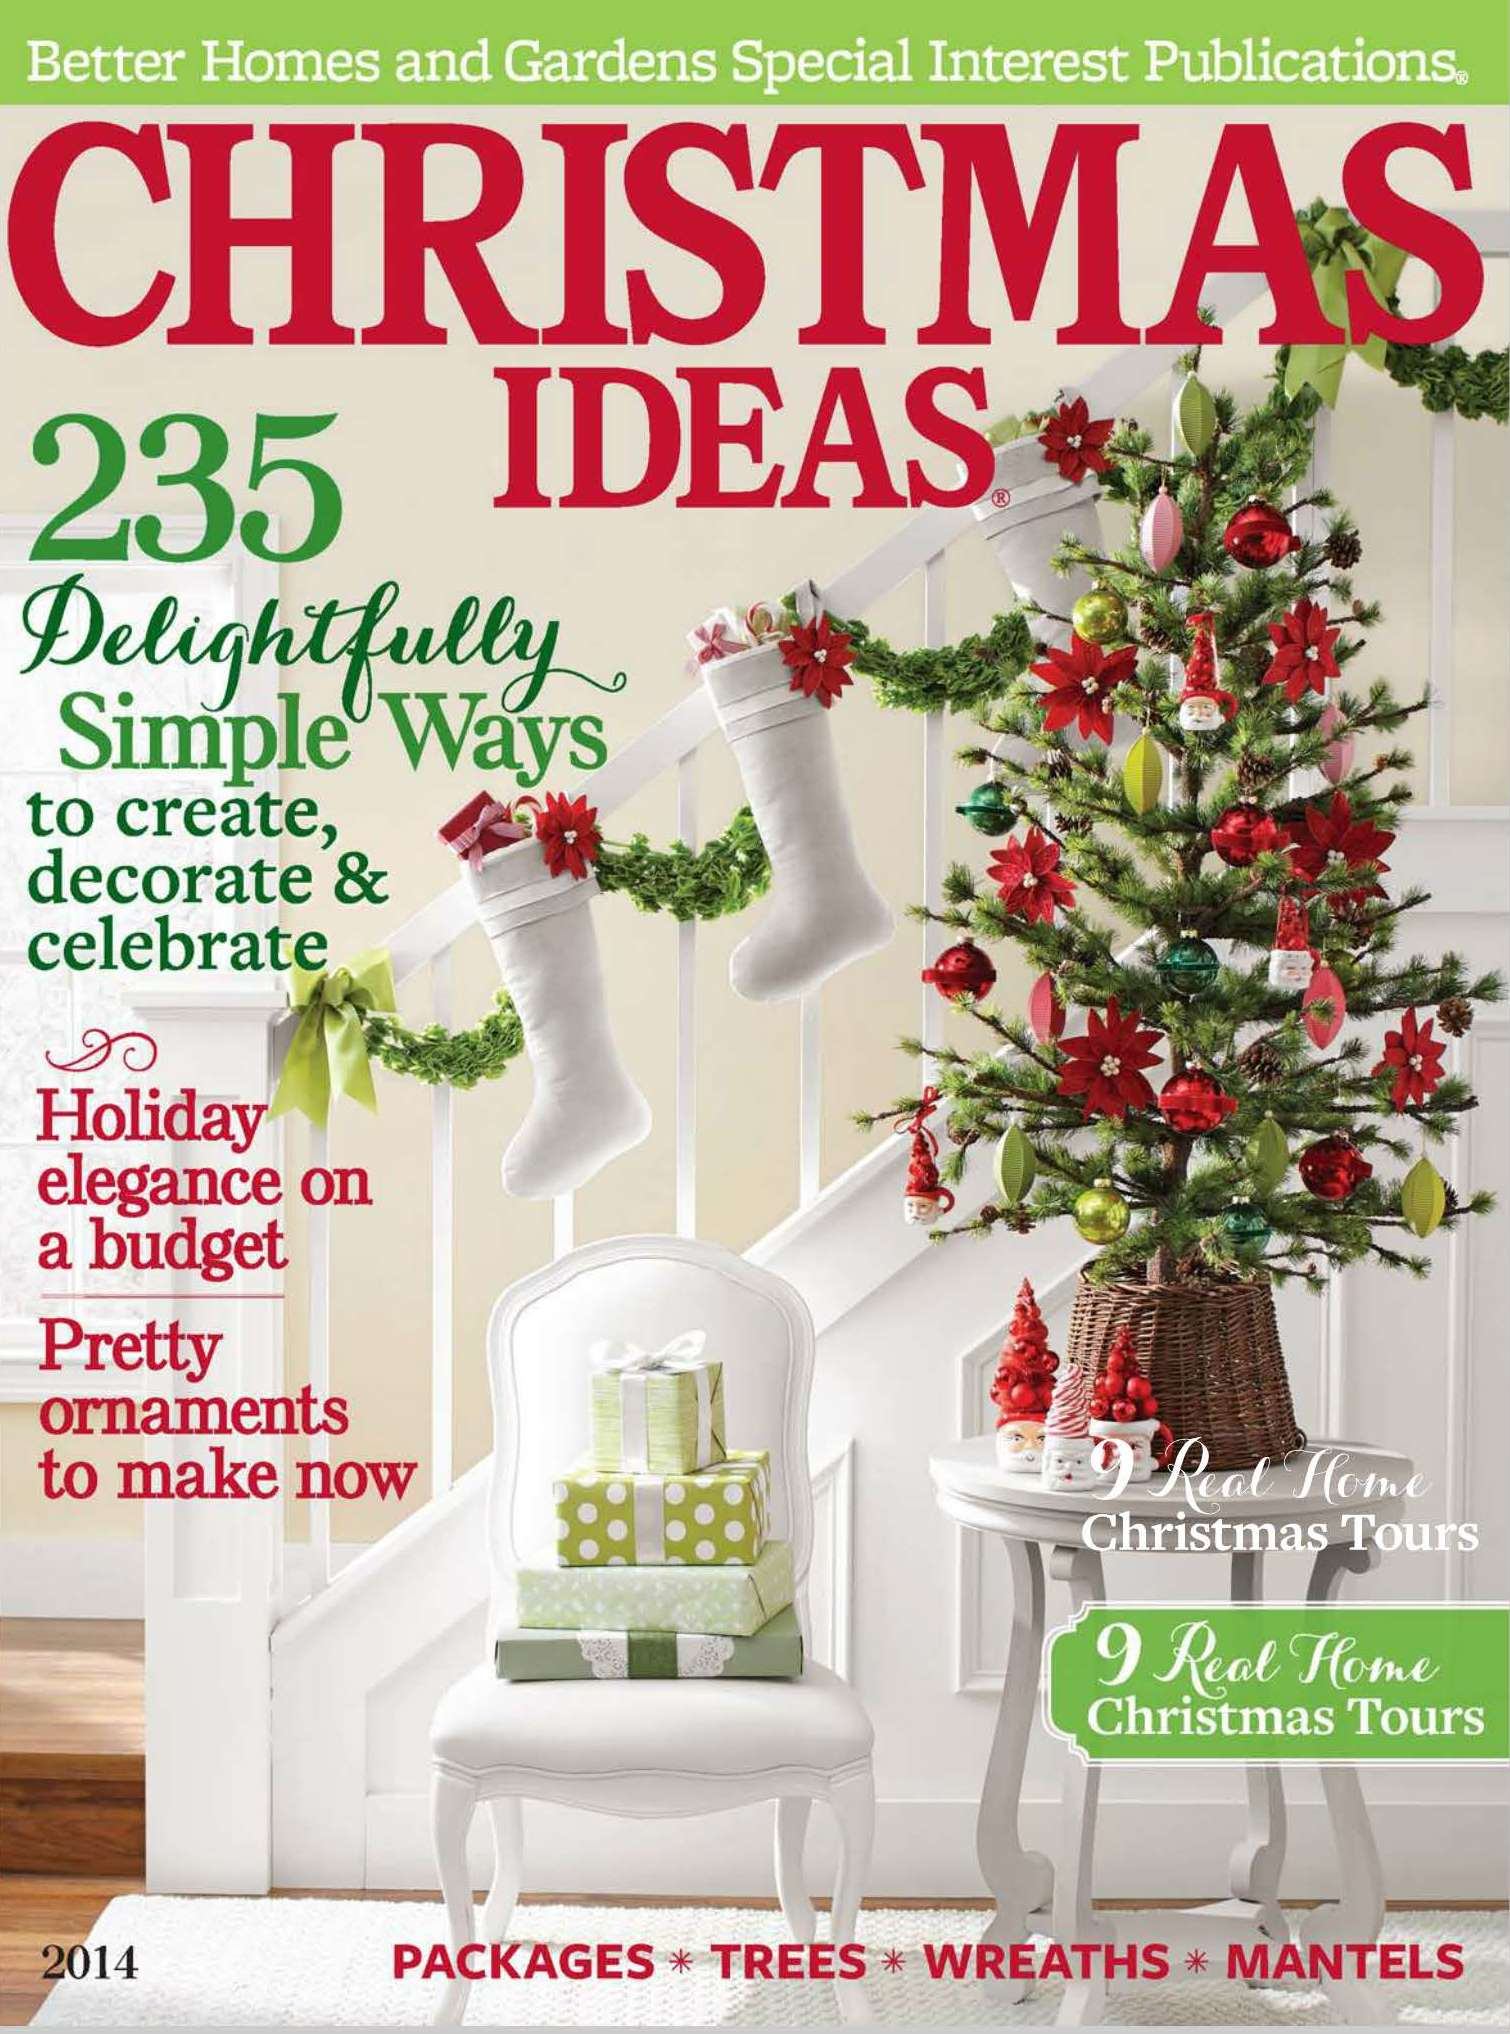 Ordinaire Festive Flourishes In Better Homes And Gardens U201cChristmas Ideasu201d.